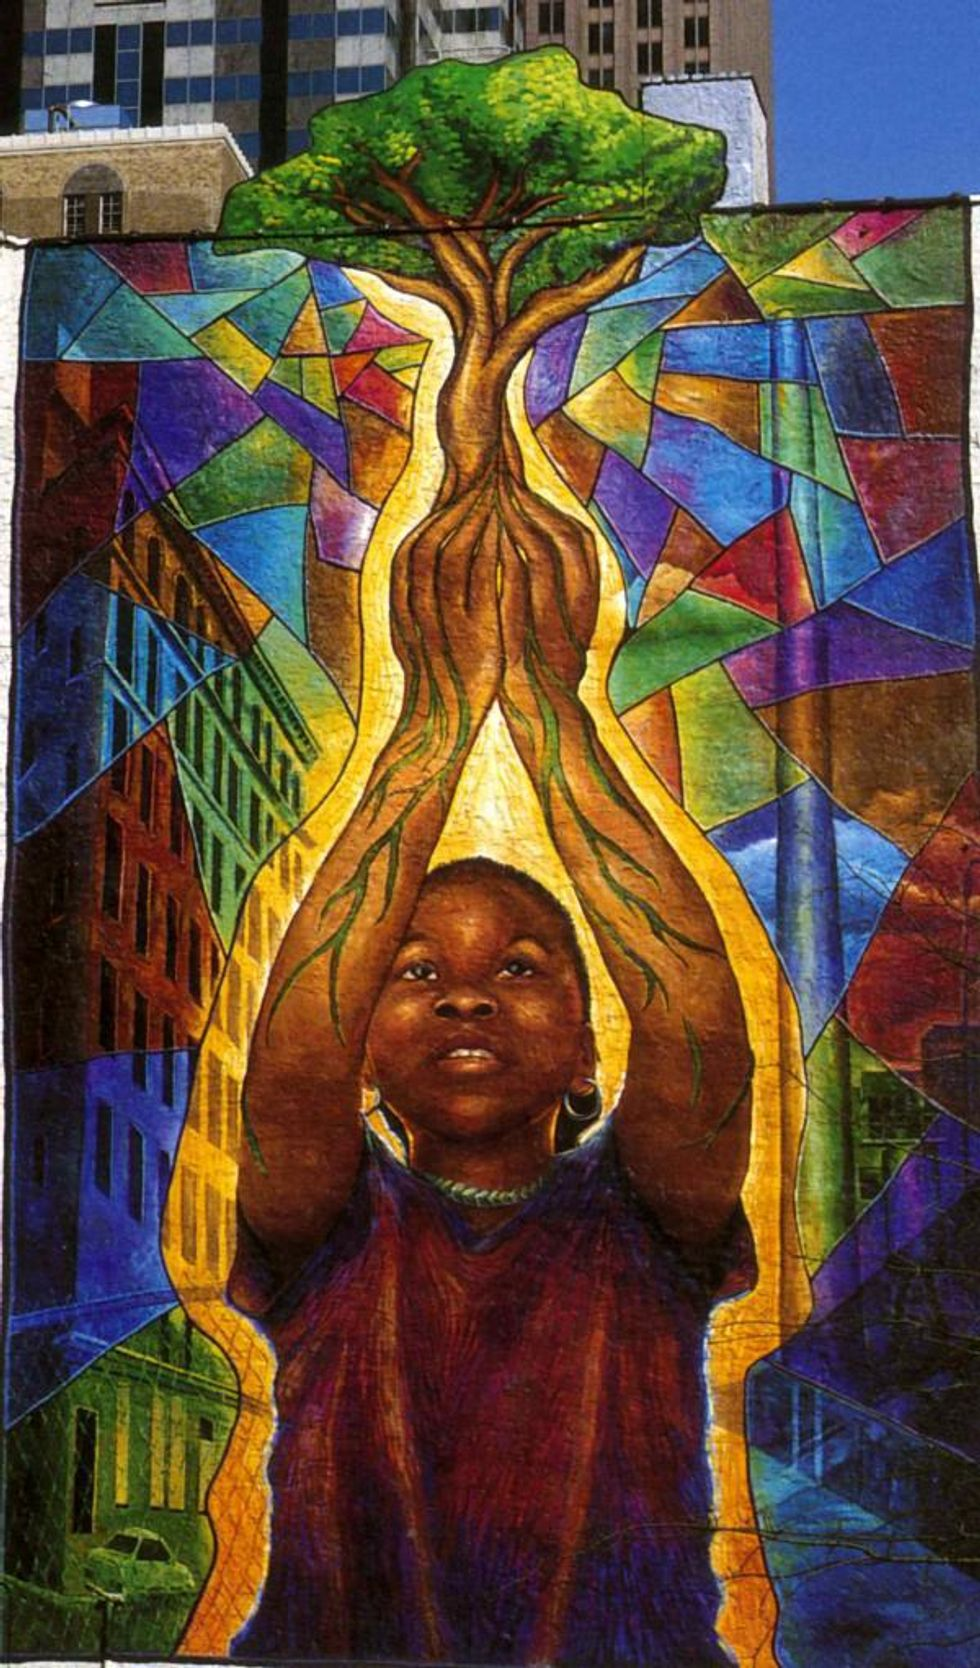 mural of strong black child